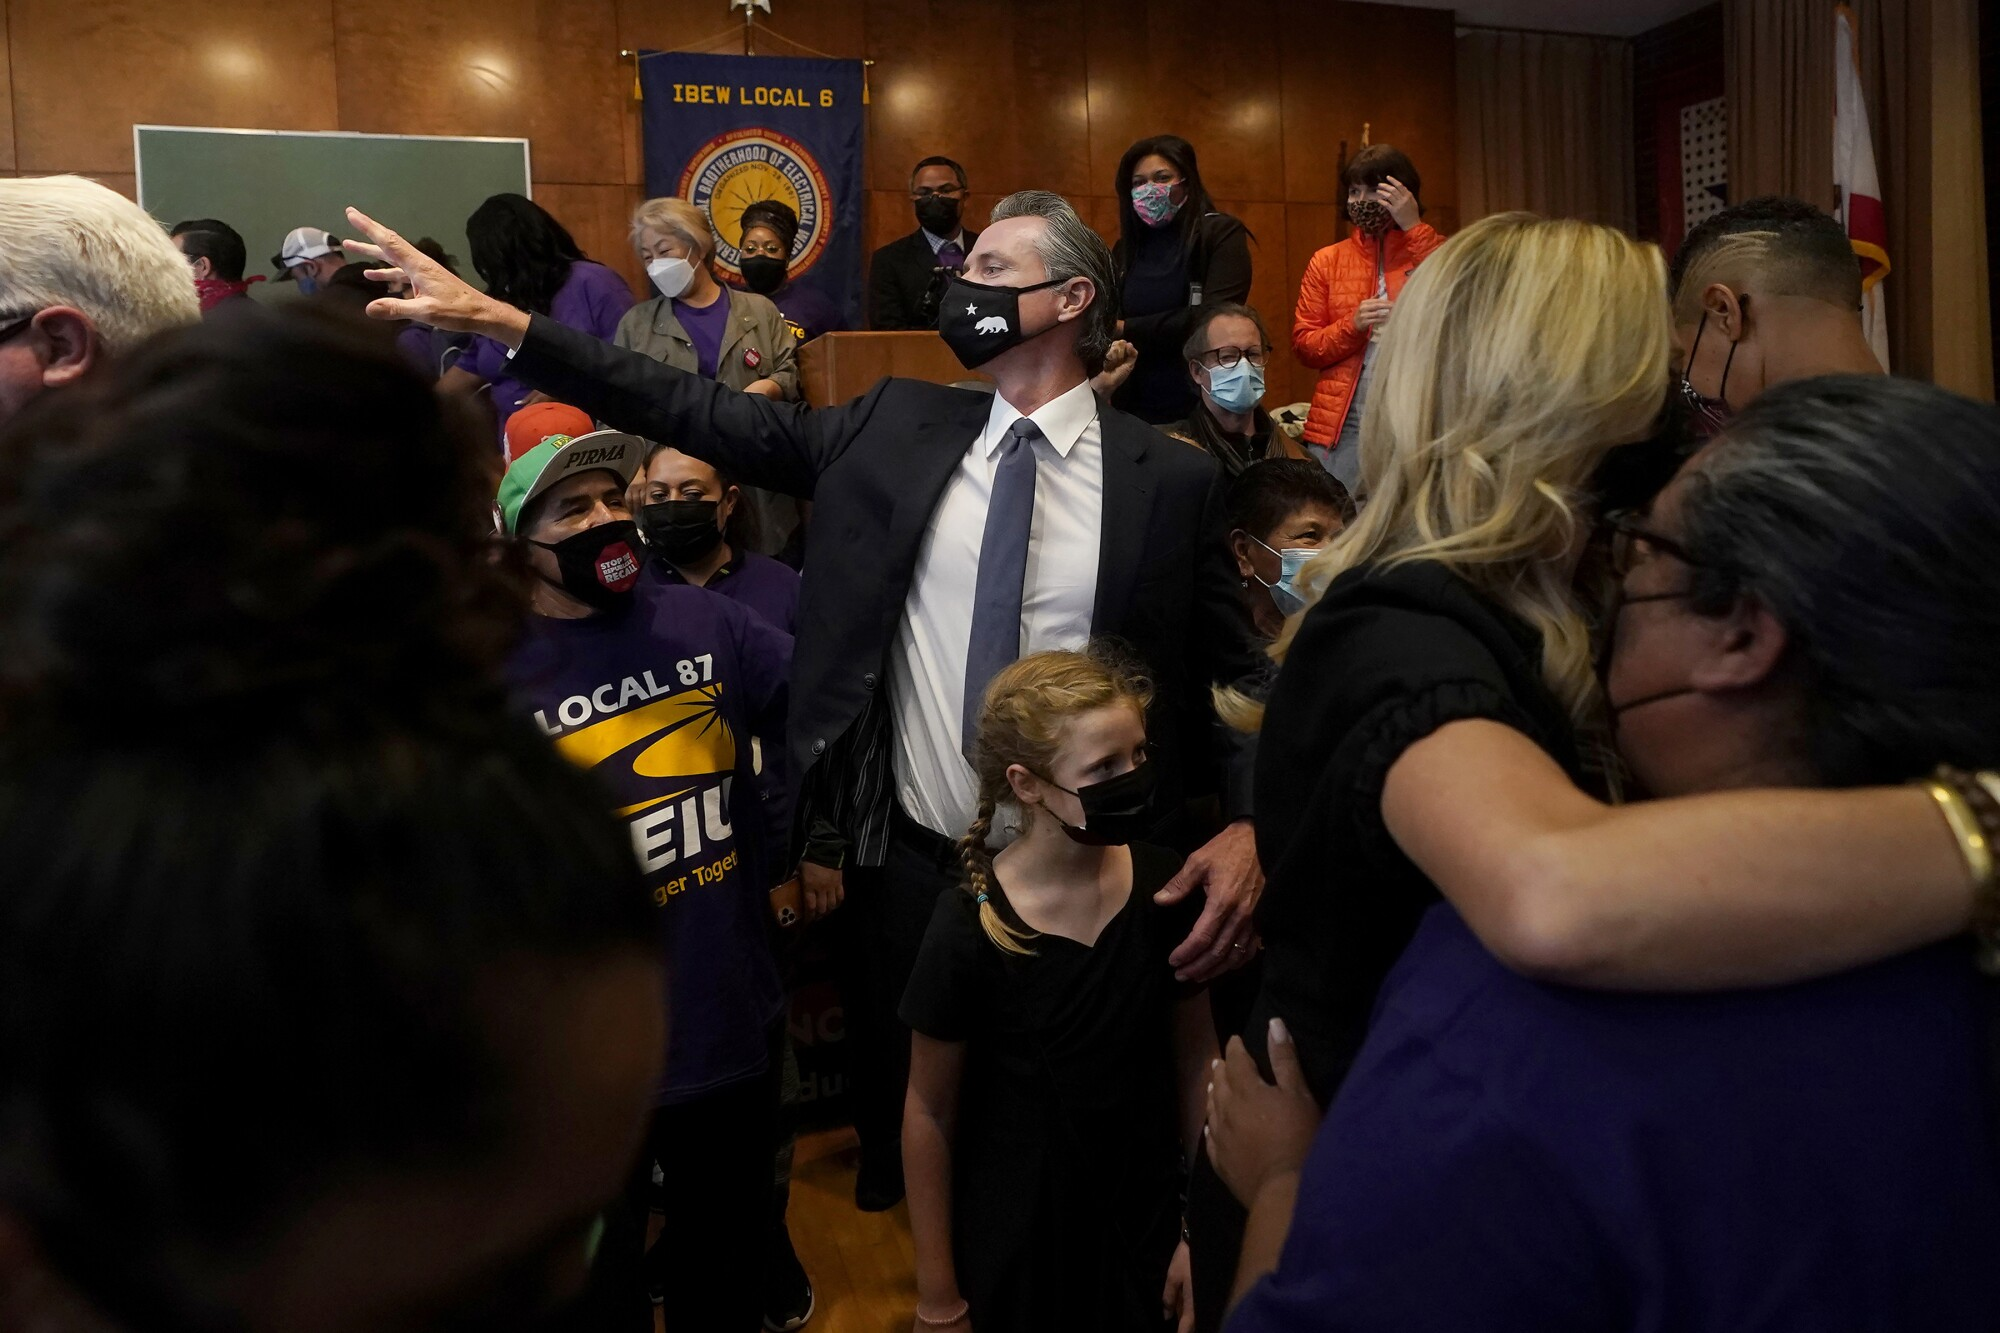 Gov. Gavin Newsom with his daughter in a crowded room